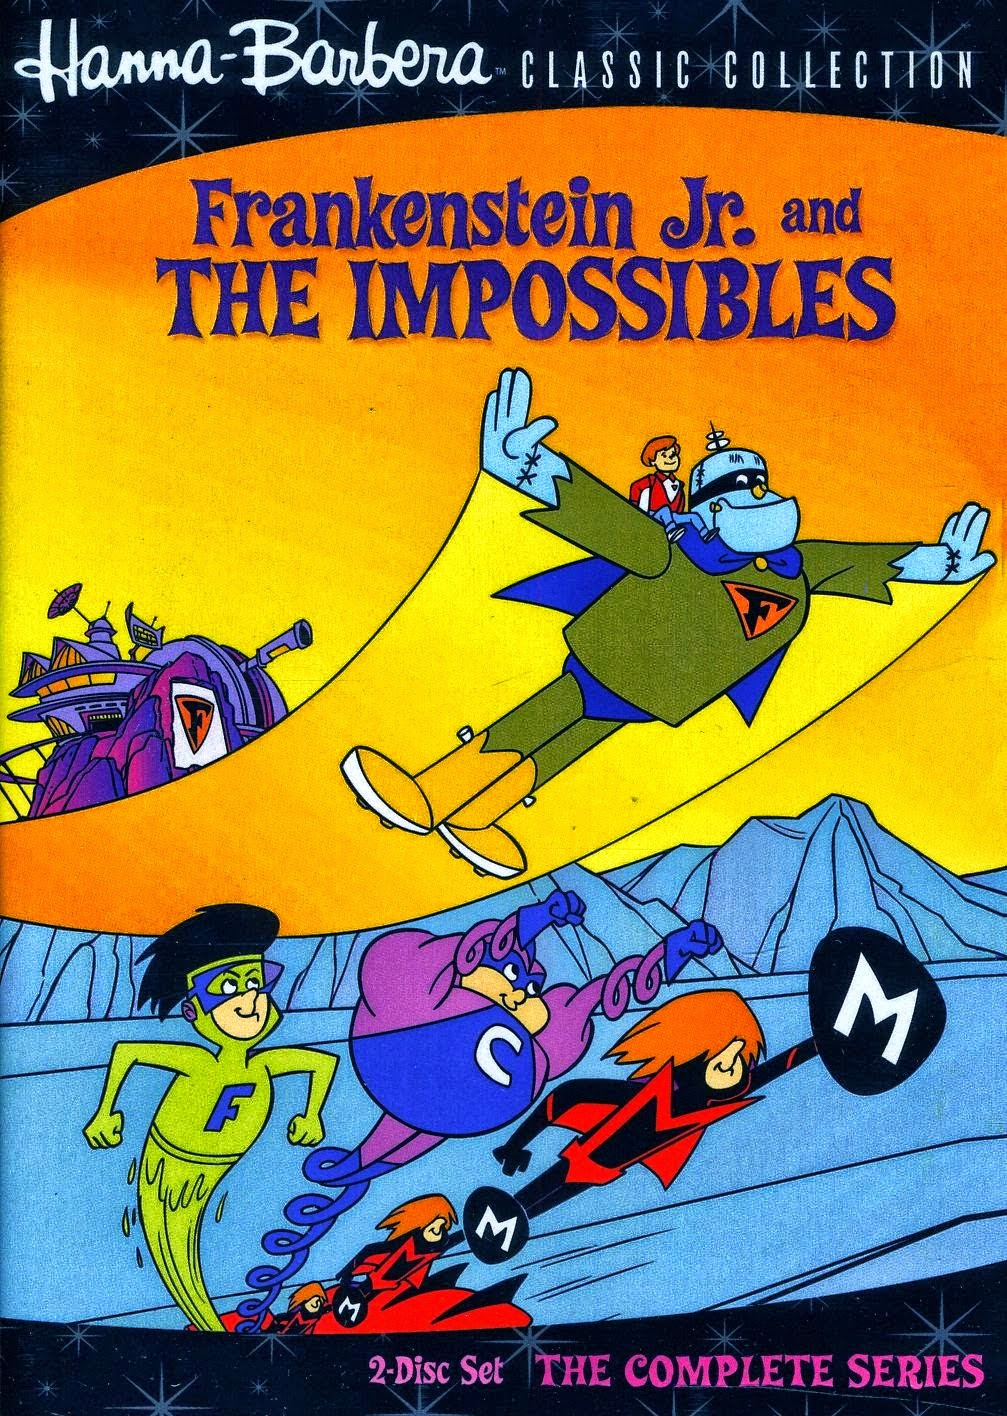 http://superheroesrevelados.blogspot.com.ar/2014/04/frankenstein-jr-and-impossibles.html